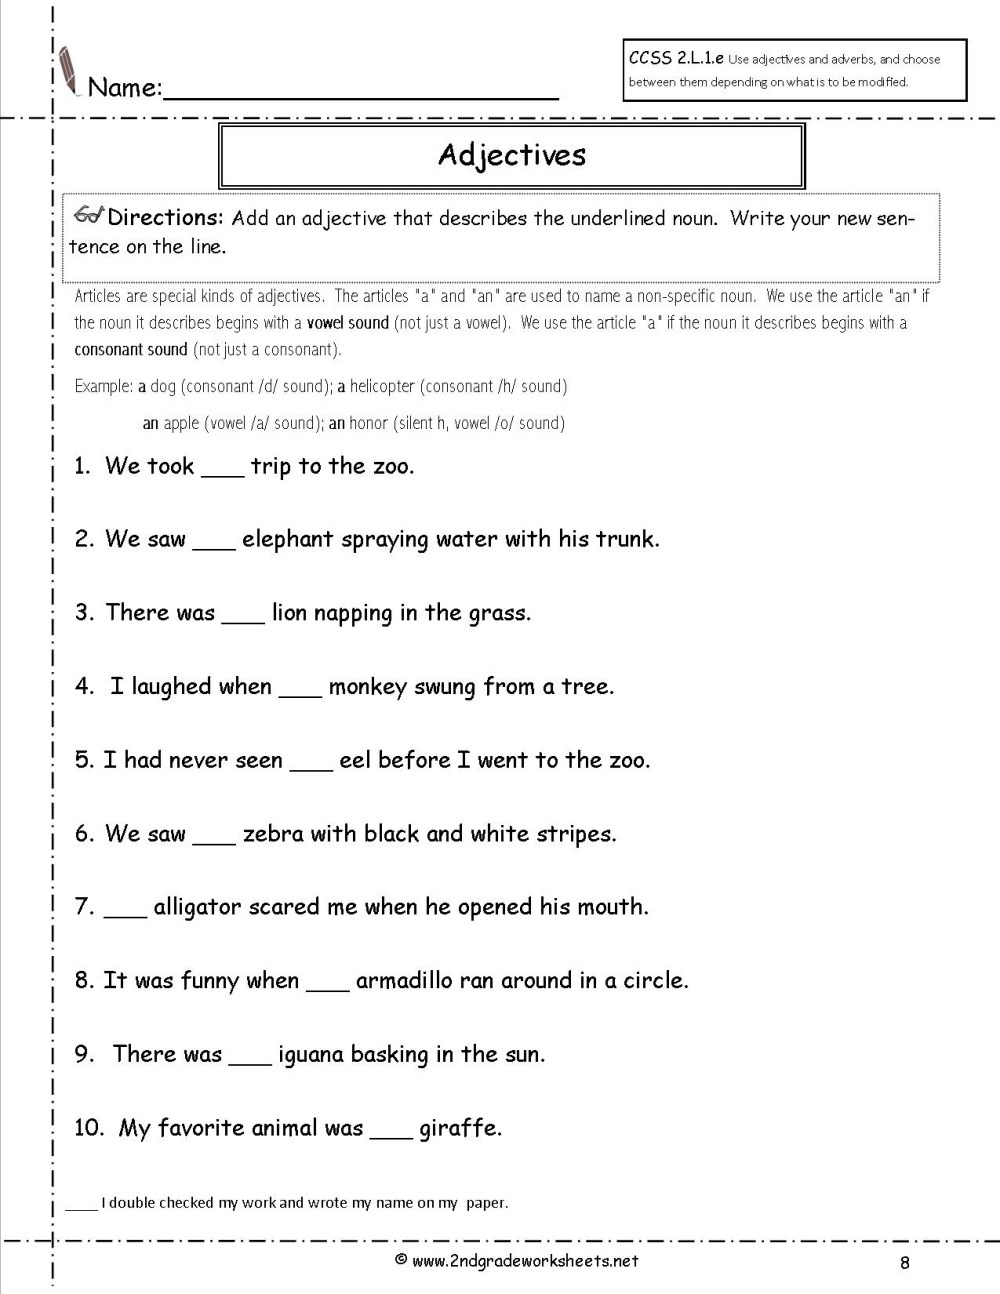 medium resolution of Magnet Worksheets For 2nd Grade   Printable Worksheets and Activities for  Teachers